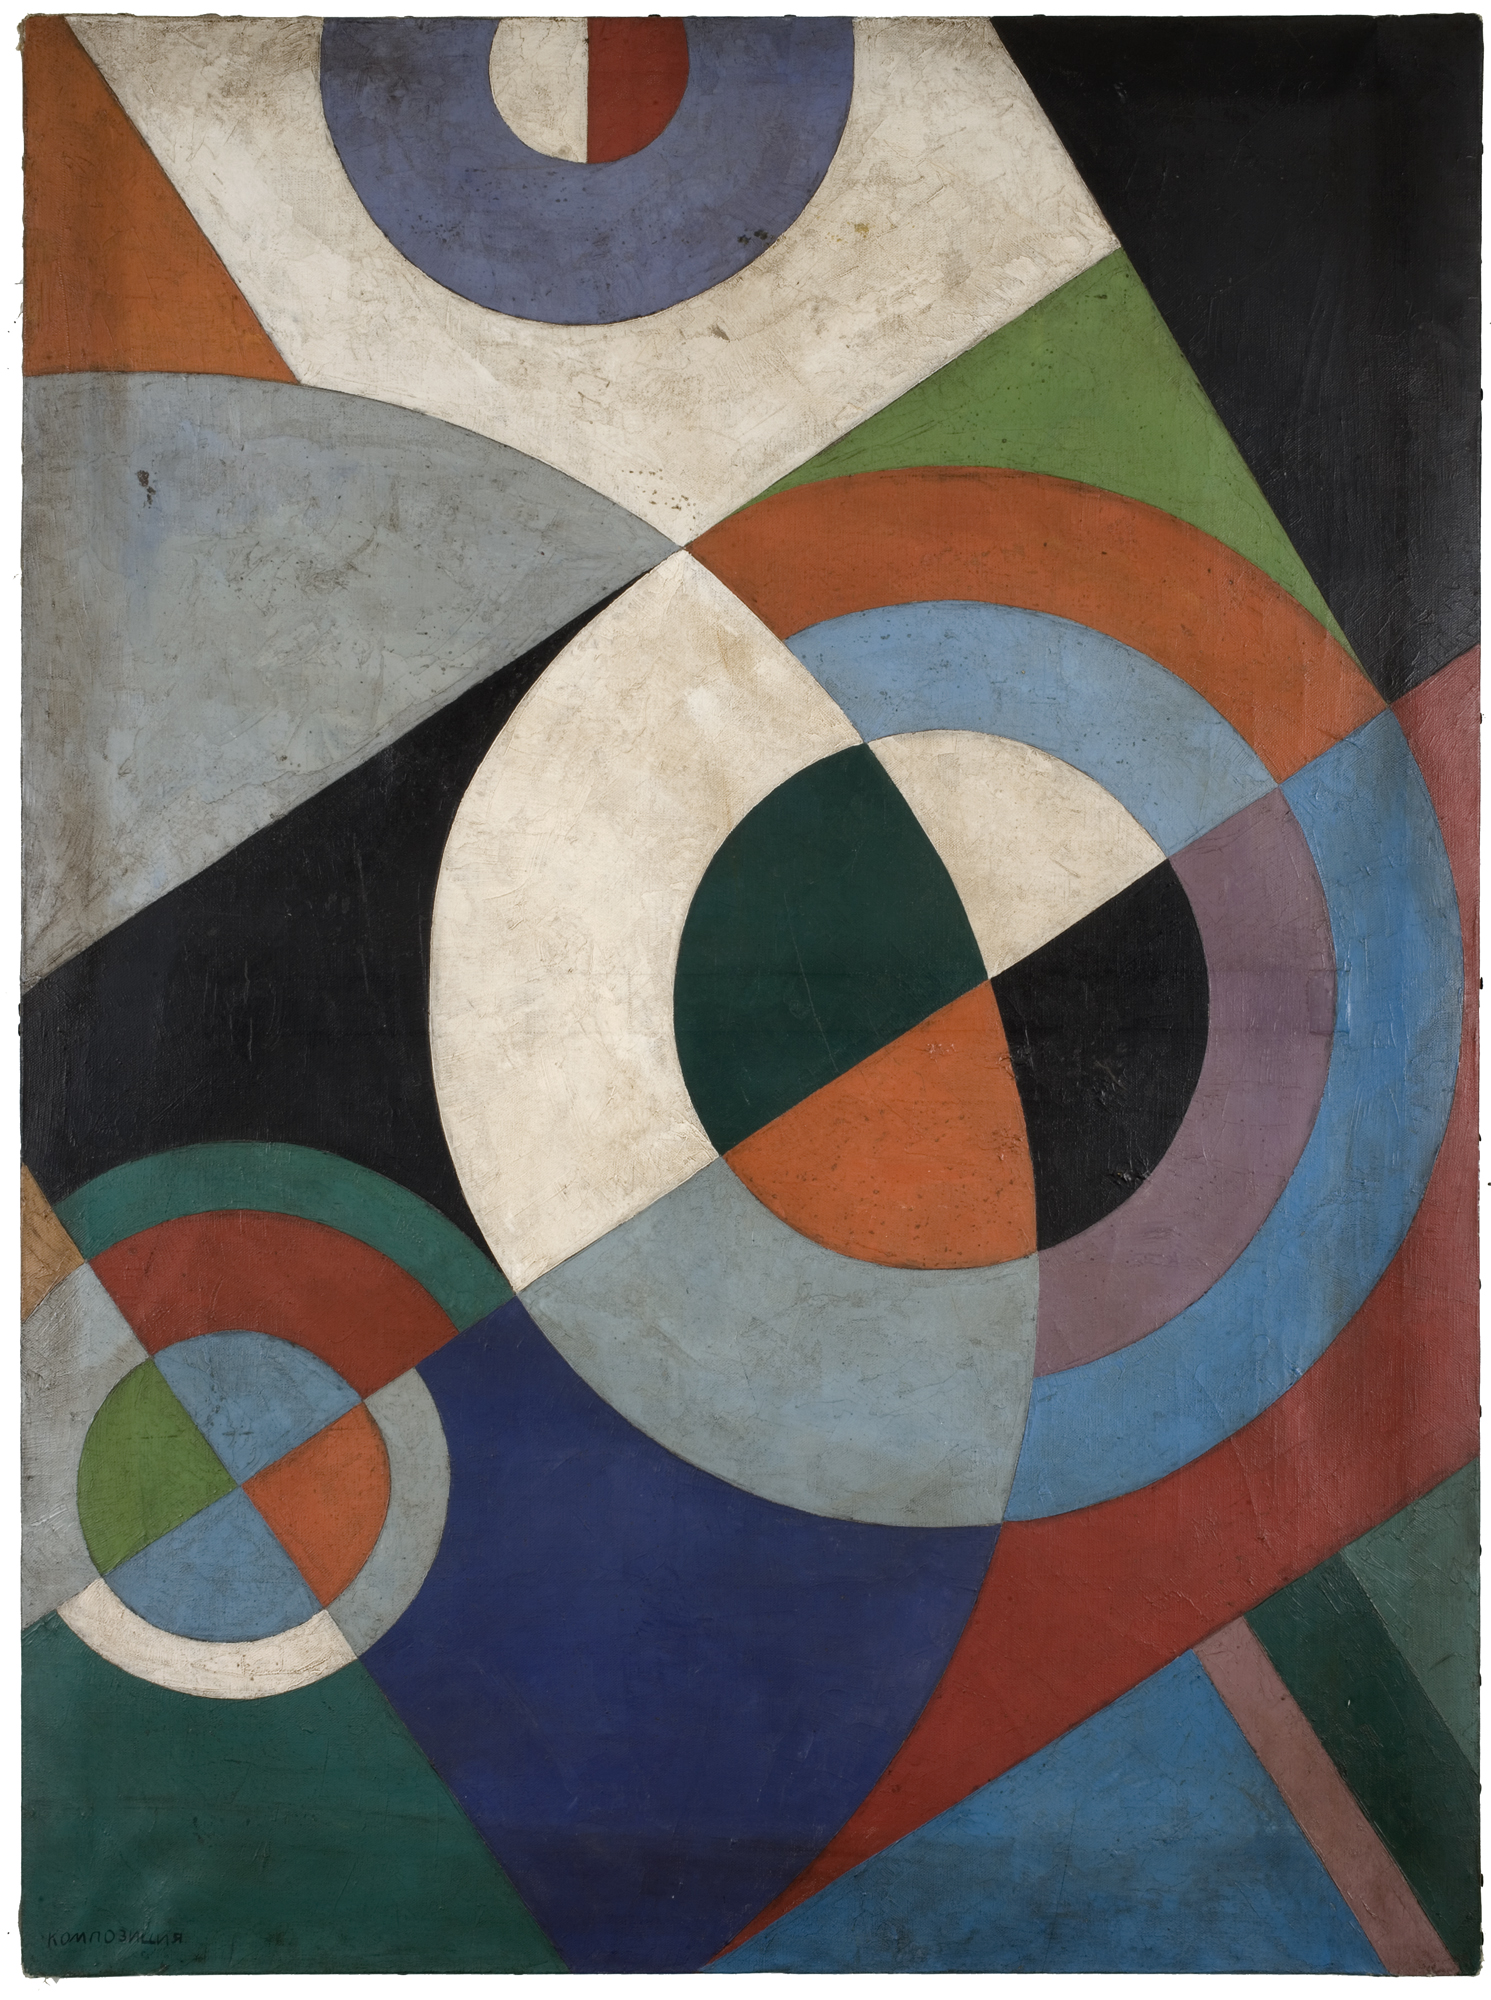 """Unattributed. Unsigned.In the style of Alexander Rodchenko. Text in Russian on lower left front, translates to """"Composition"""". Oil on canvas. 100 x 75 cm."""